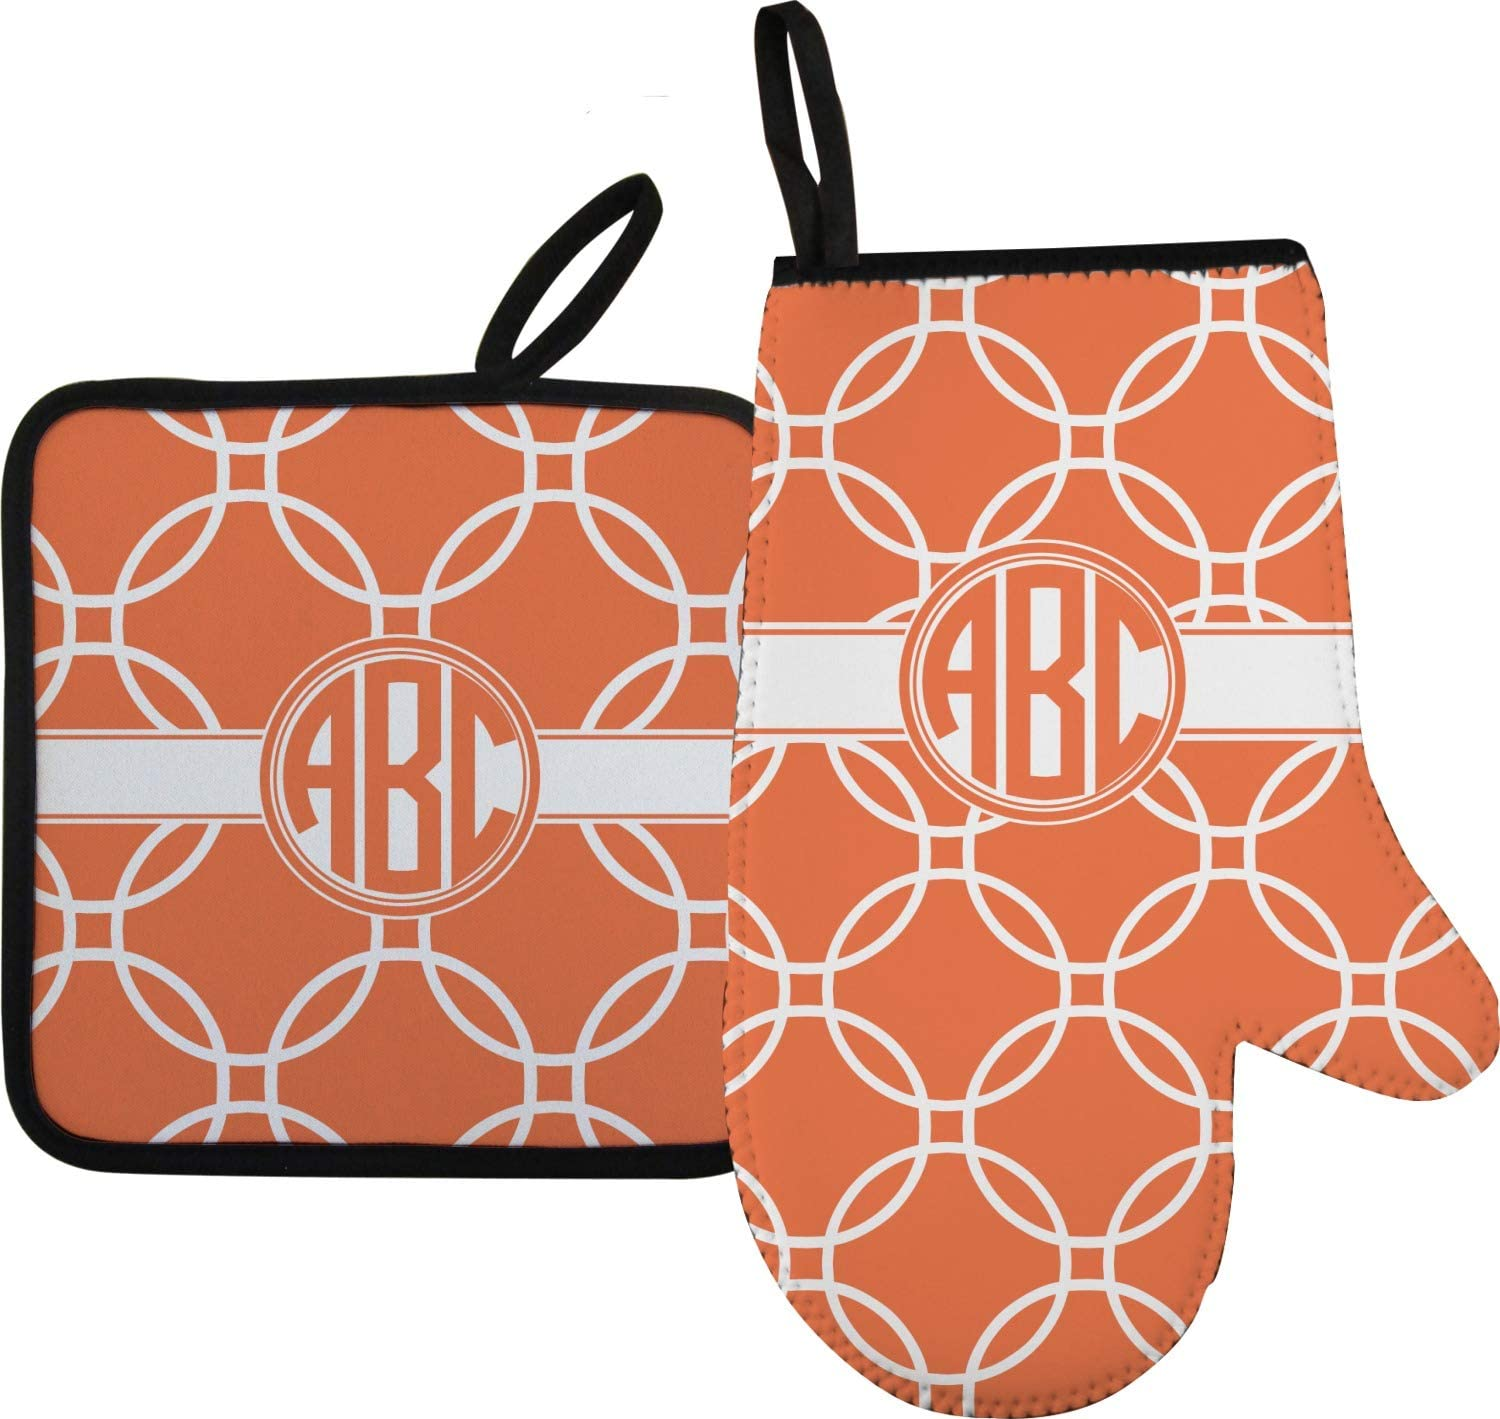 YouCustomizeIt Linked Circles Oven Mitt & Pot Holder (Personalized)